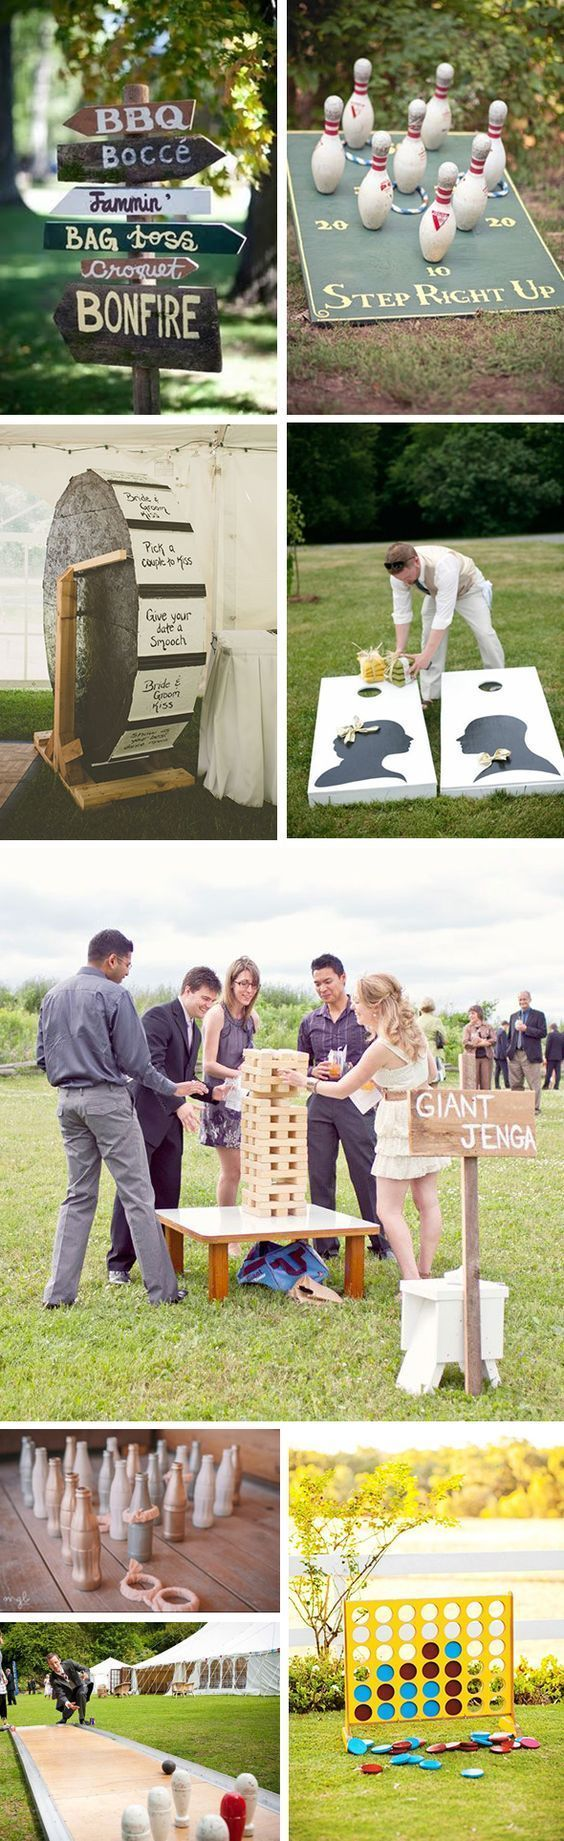 65 Wedding Reception Game Ideas To Entertain Your Guests   - Outdoor Weddings -